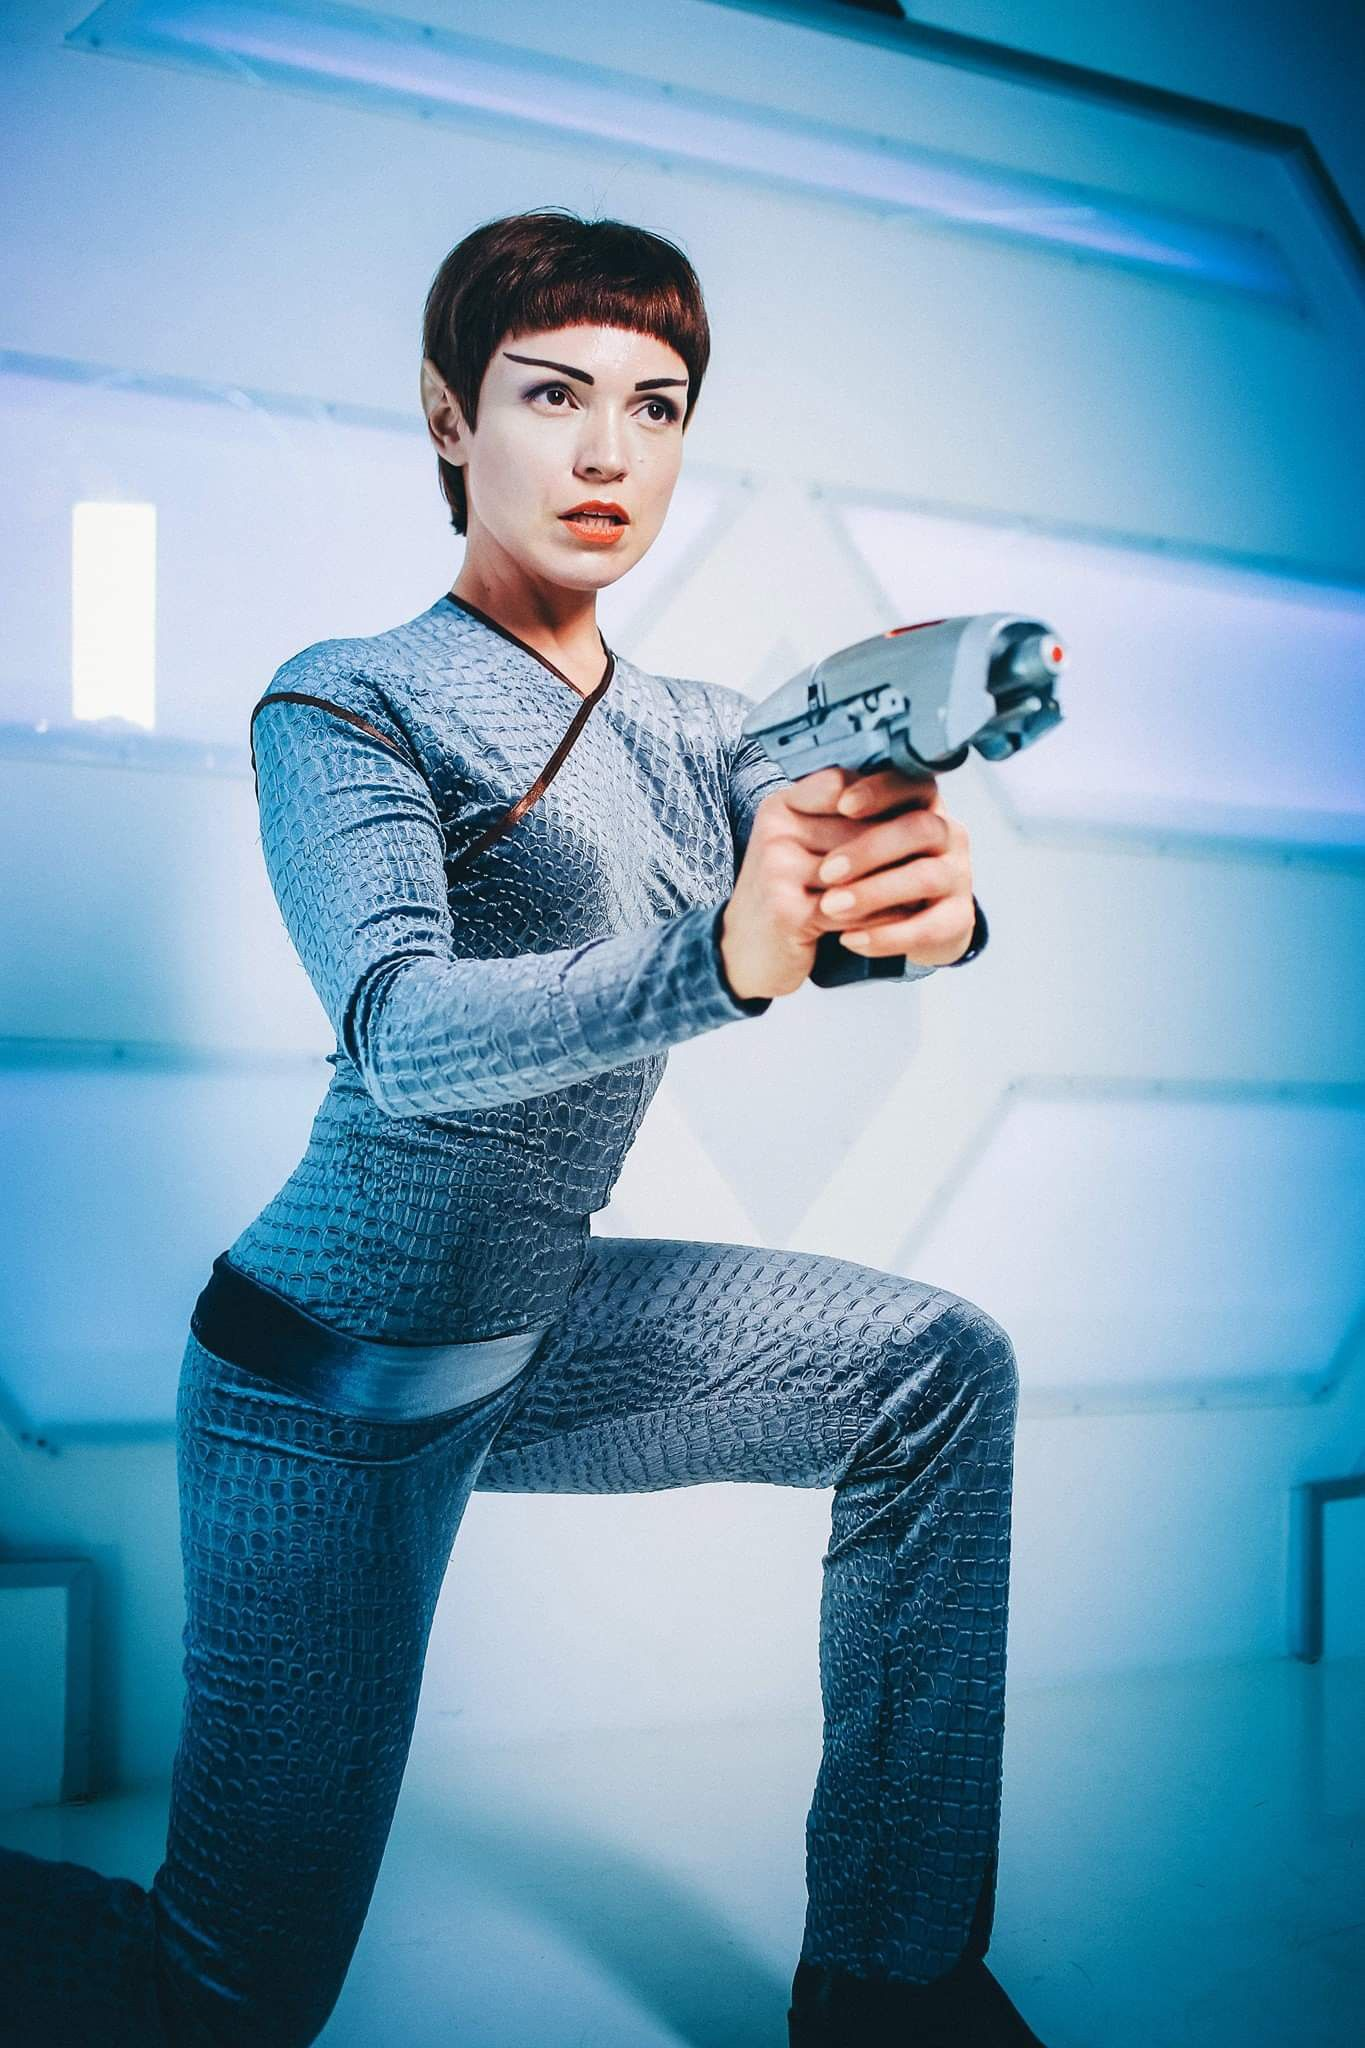 Pin by Collin Wood on Cosplay Awesomeness | Star trek ...